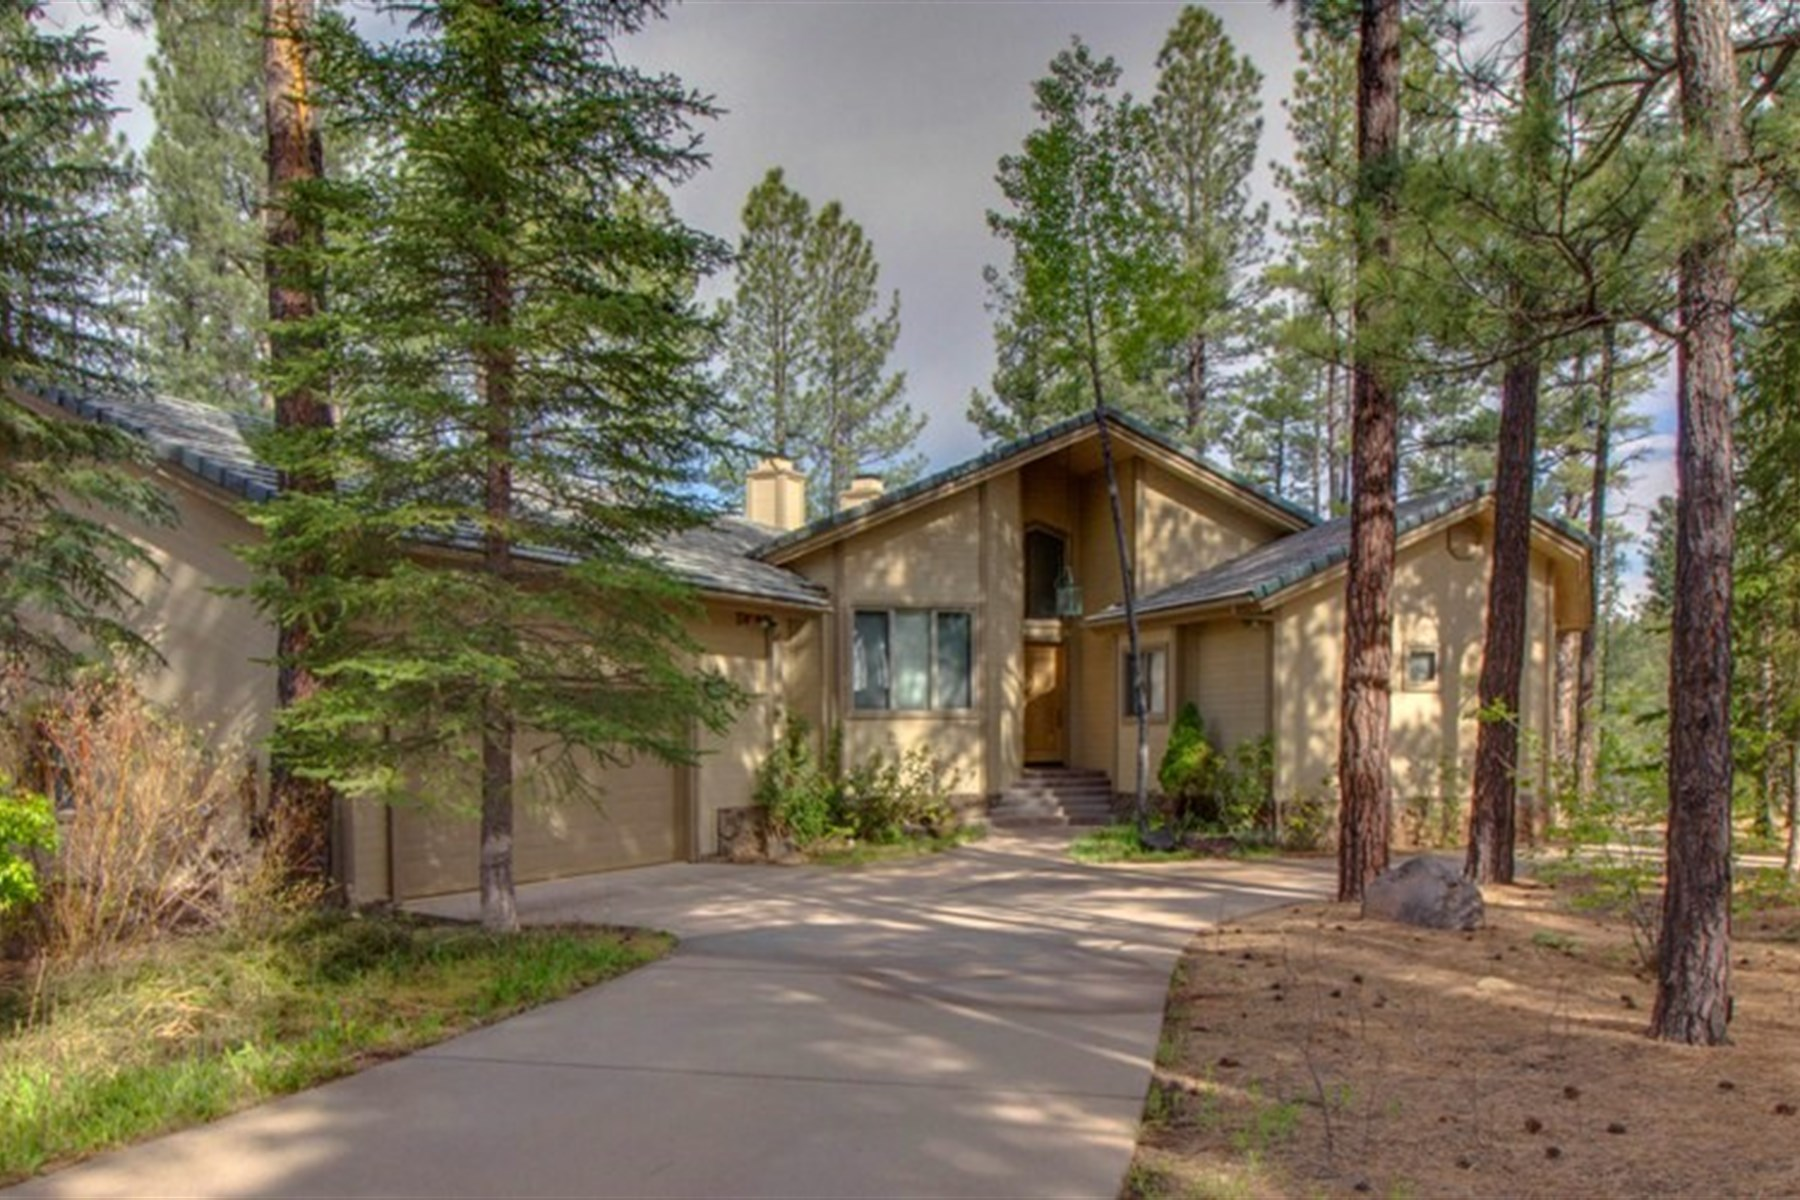 Casa para uma família para Venda às Backing National Forest with stunning San Francisco Peak. 2034 William Palmer Flagstaff, Arizona 86005 Estados Unidos